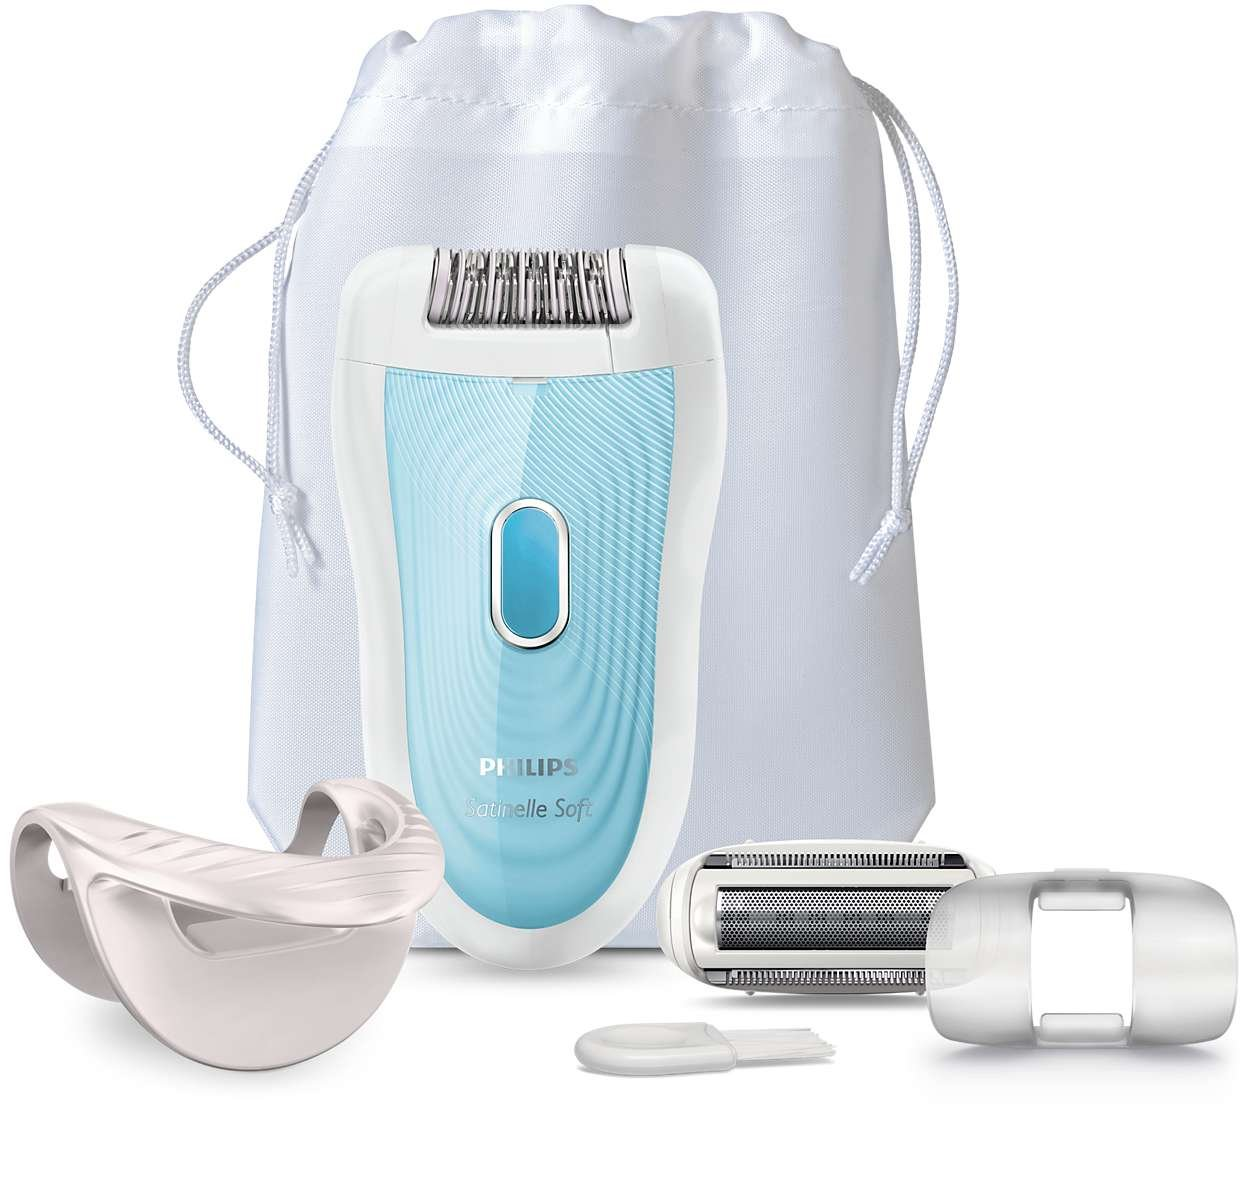 Philips BRE210/00 Satinelle Legs & Arms Advanced Epilator